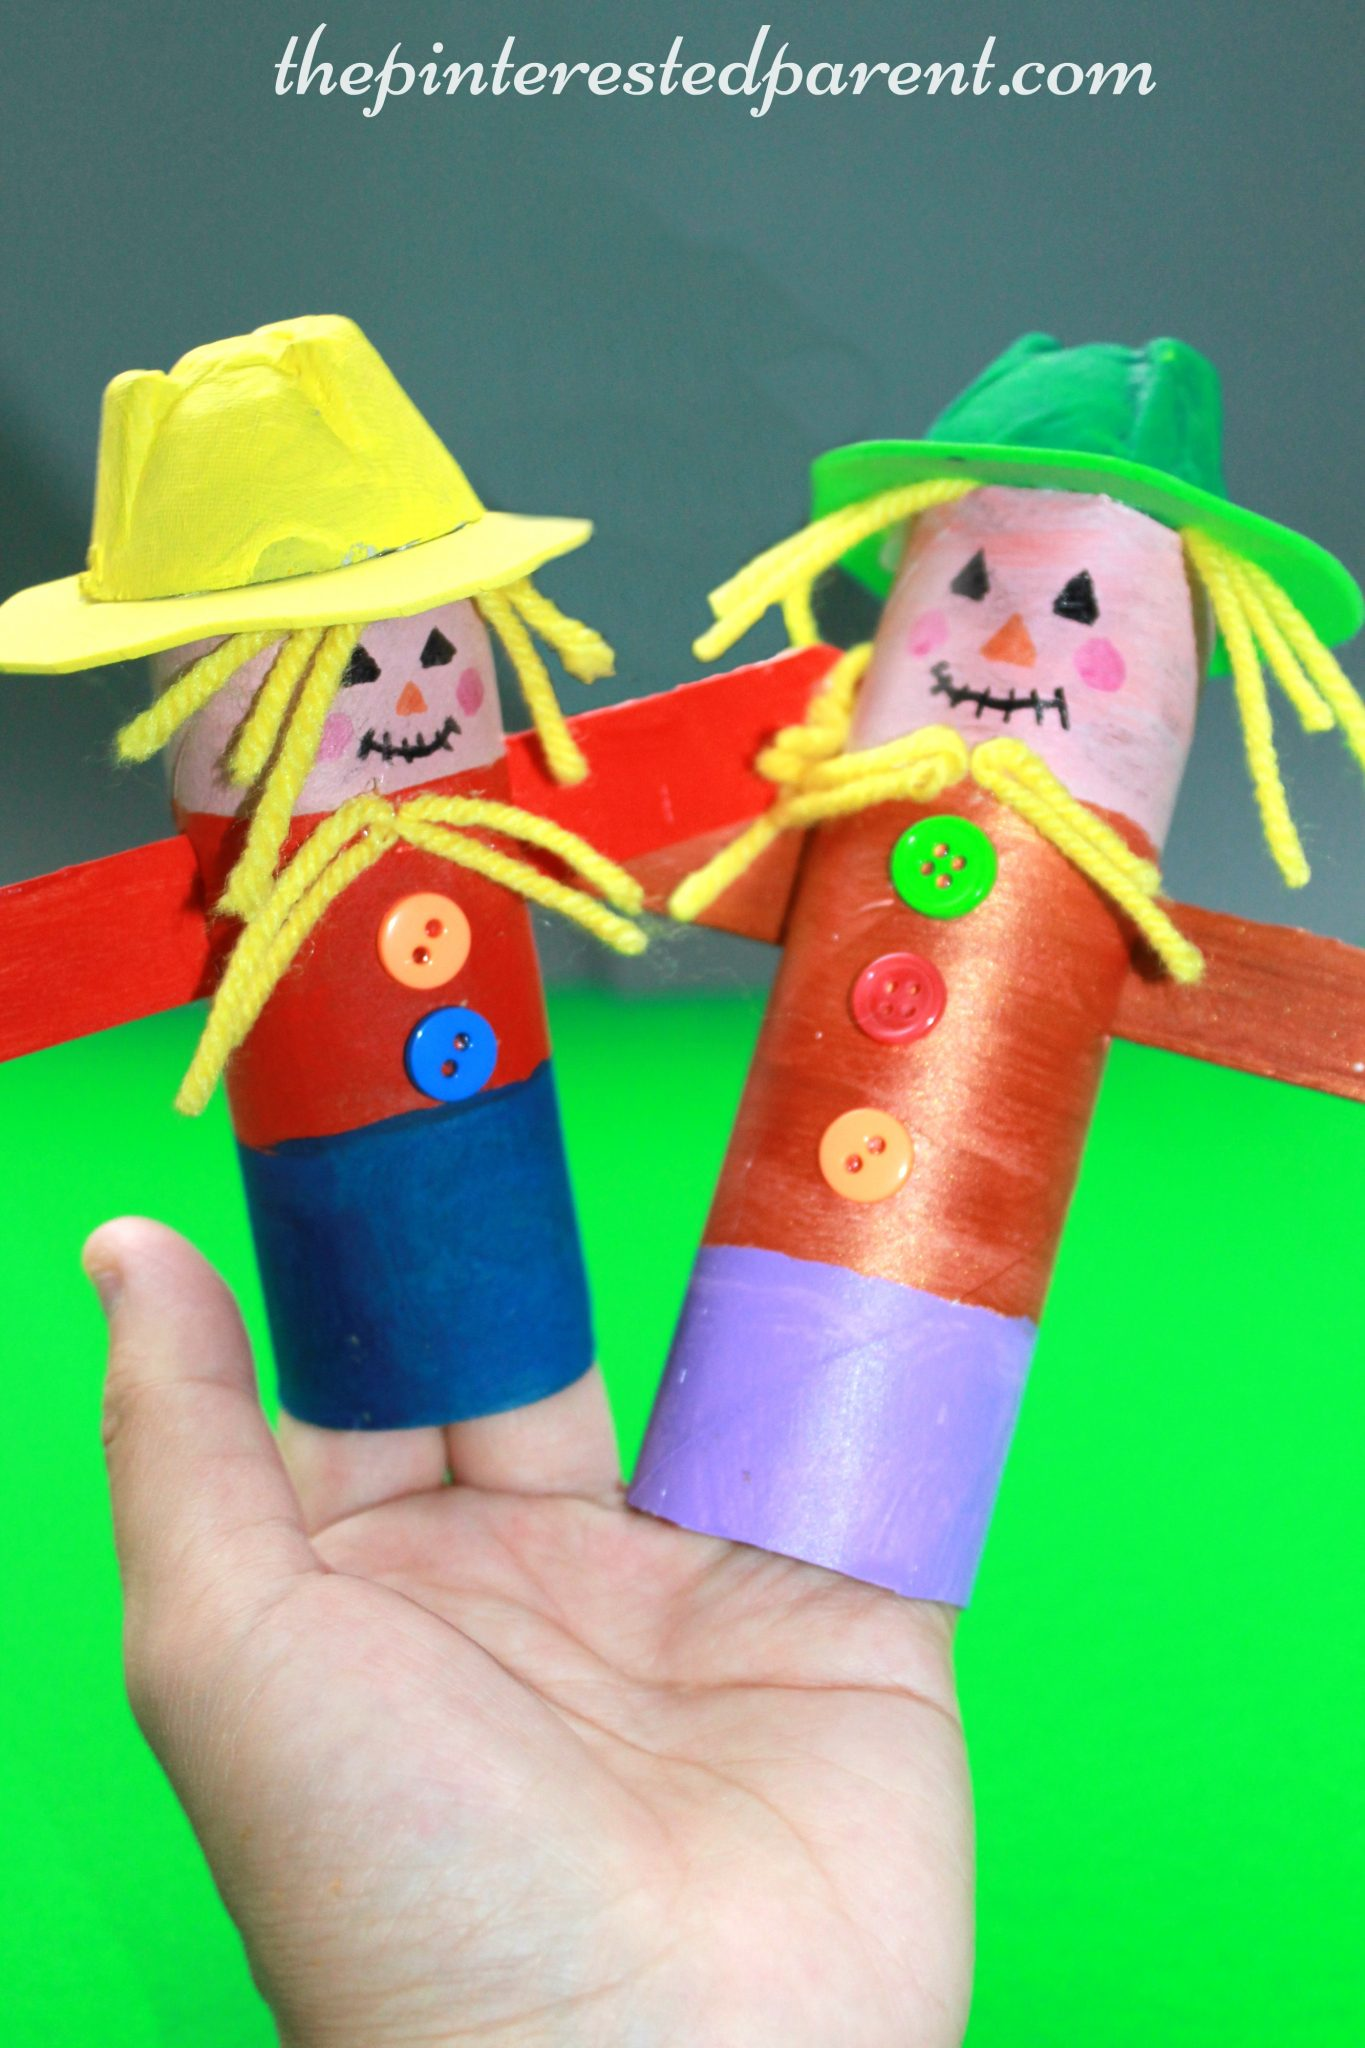 crafts ideas for kids toilet paper scarecrows the pinterested parent 4142